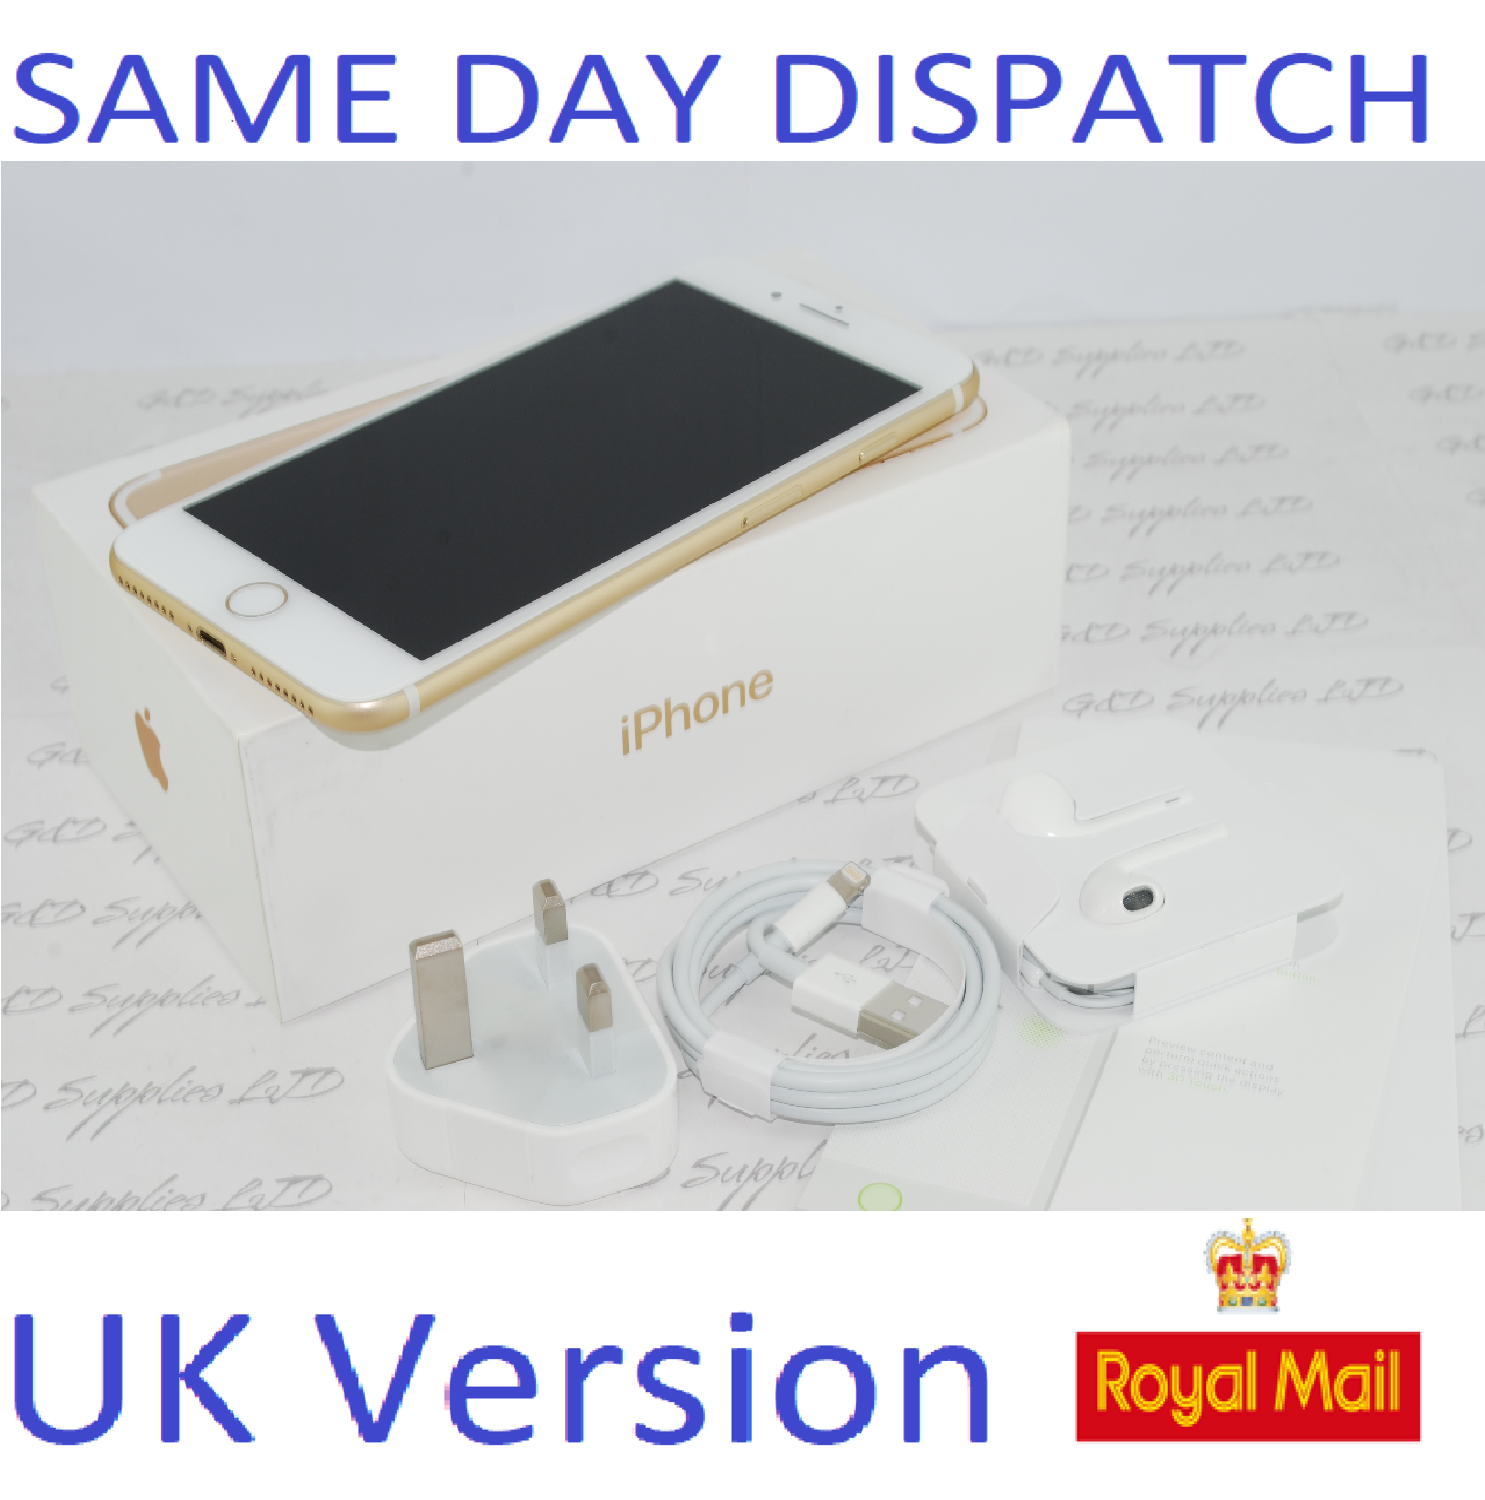 Apple iPhone 7 Plus - 32GB Unlocked Gold SIM Free UK Version NEW Condition #